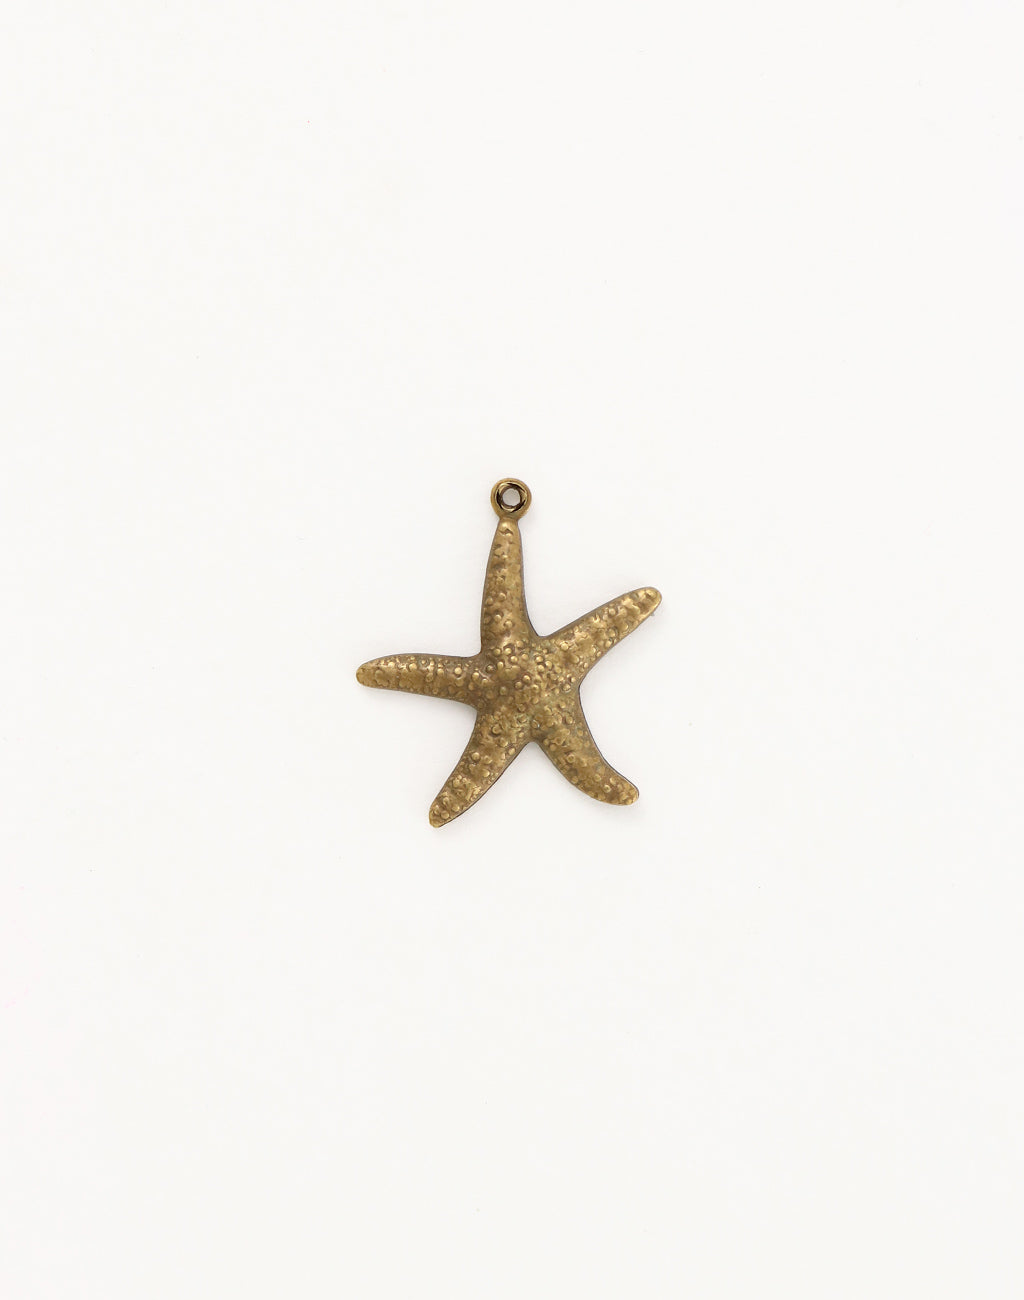 Star Fish Puff, 23x20mm, (1pcs)